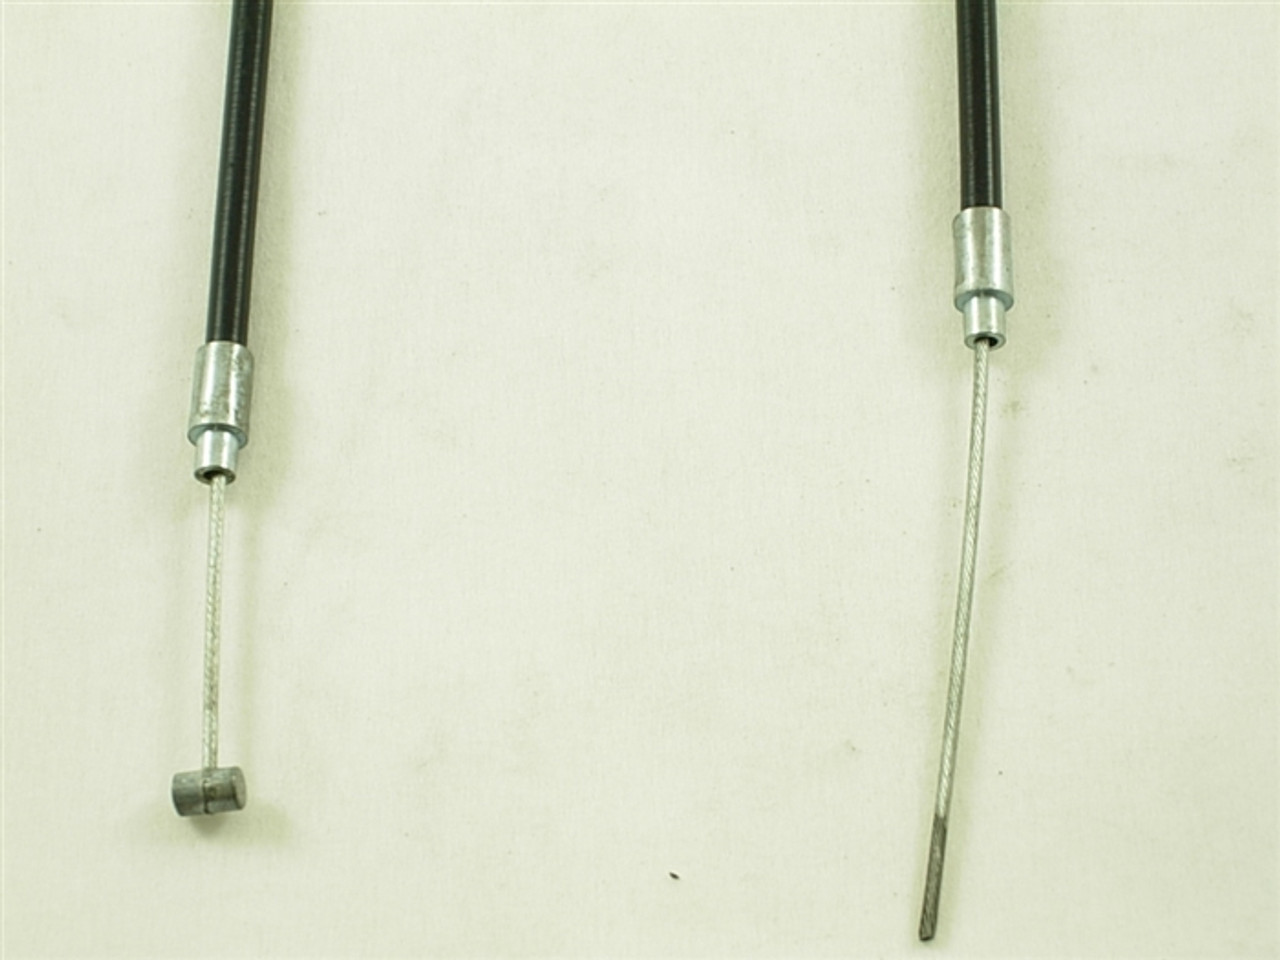 brake cable 12135-a119-11